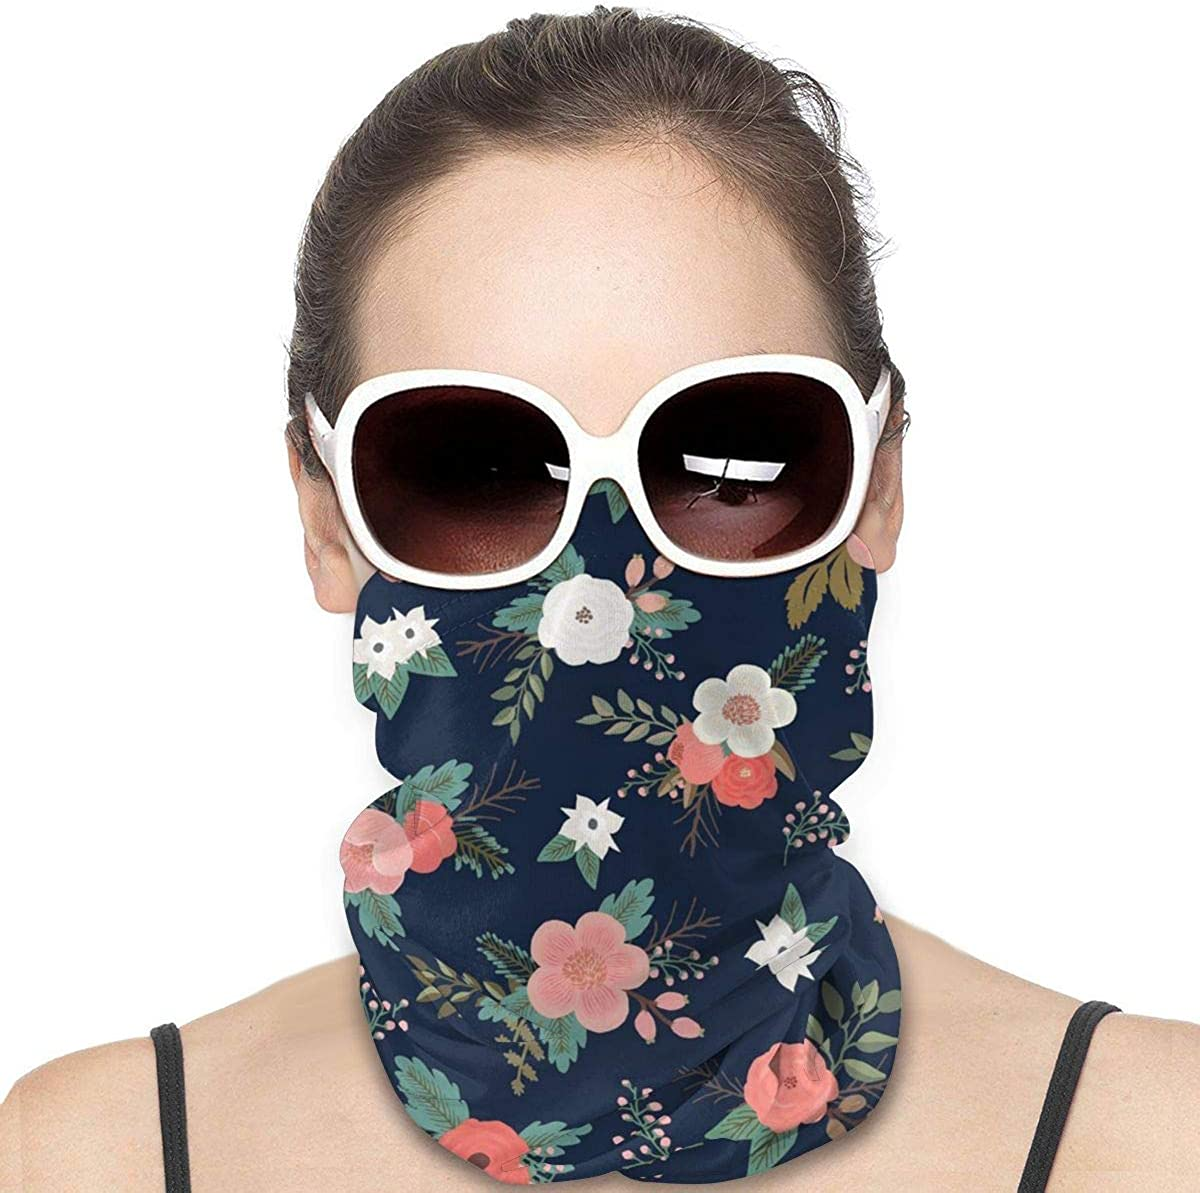 Tidyki Bandana Face Mask - Floral Sweet Bouquets in Navy and Coral Motorcycle Mask Bandana Face Mask Multifunctional Headwear Head Bands Face Cover Headwear Sun Mask